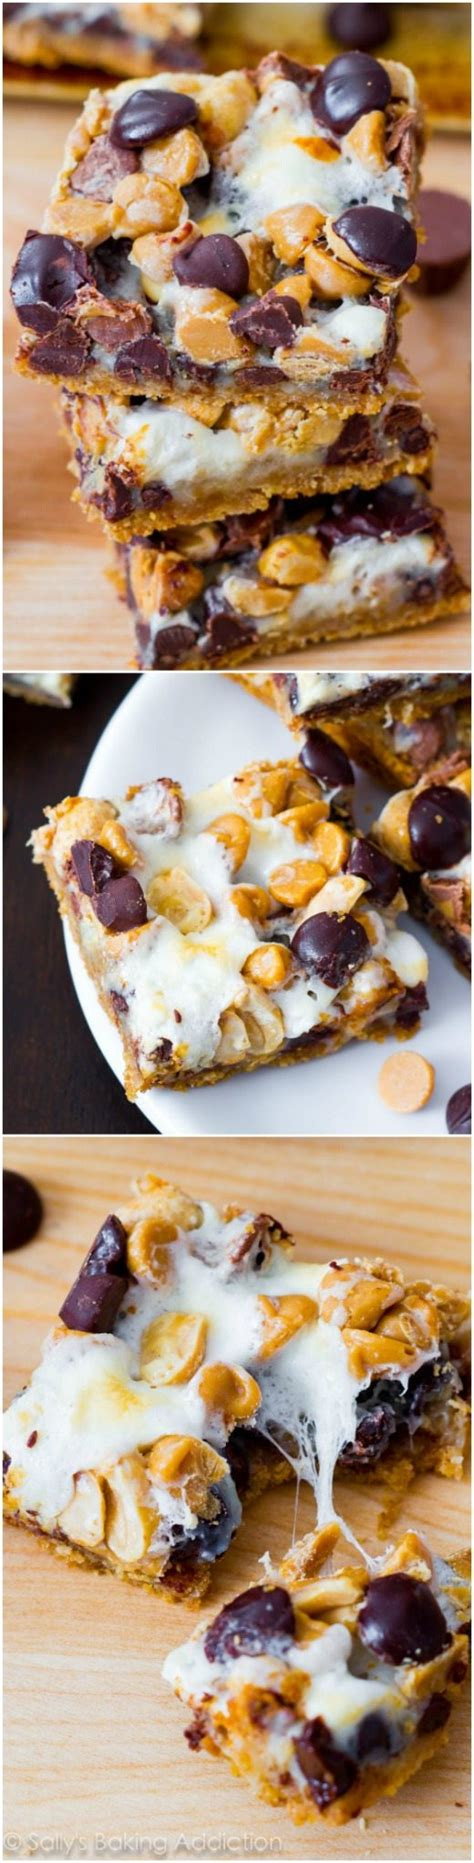 peanut butter 7 layer bars peanut butter s more 7 layer bars sallys baking addiction